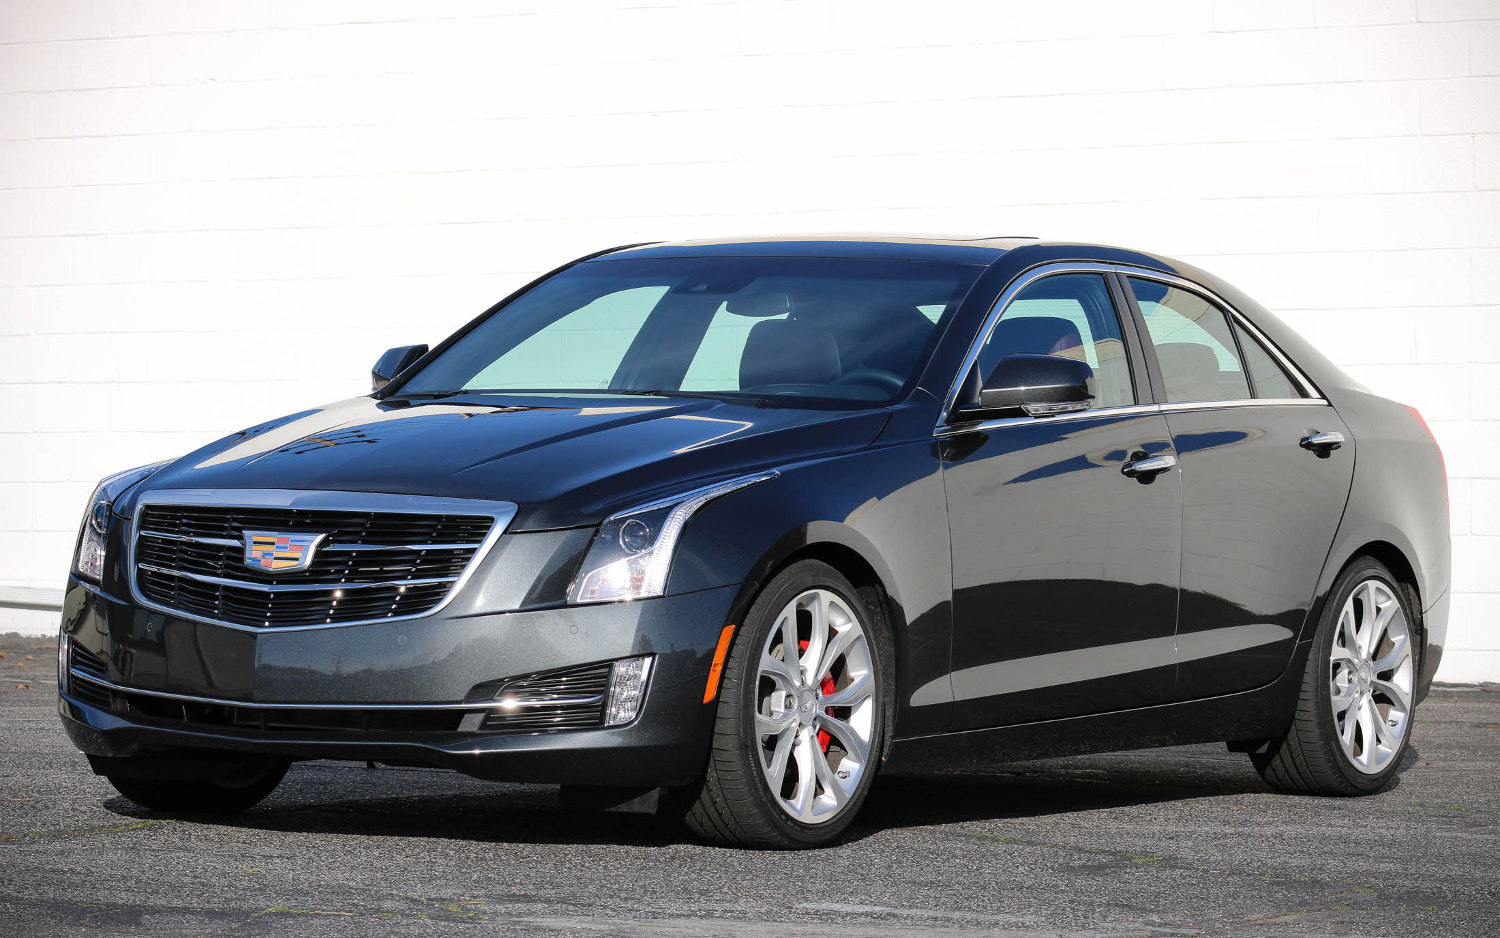 Cadillac Ats Price In India All New Car Release Date 2019 2020